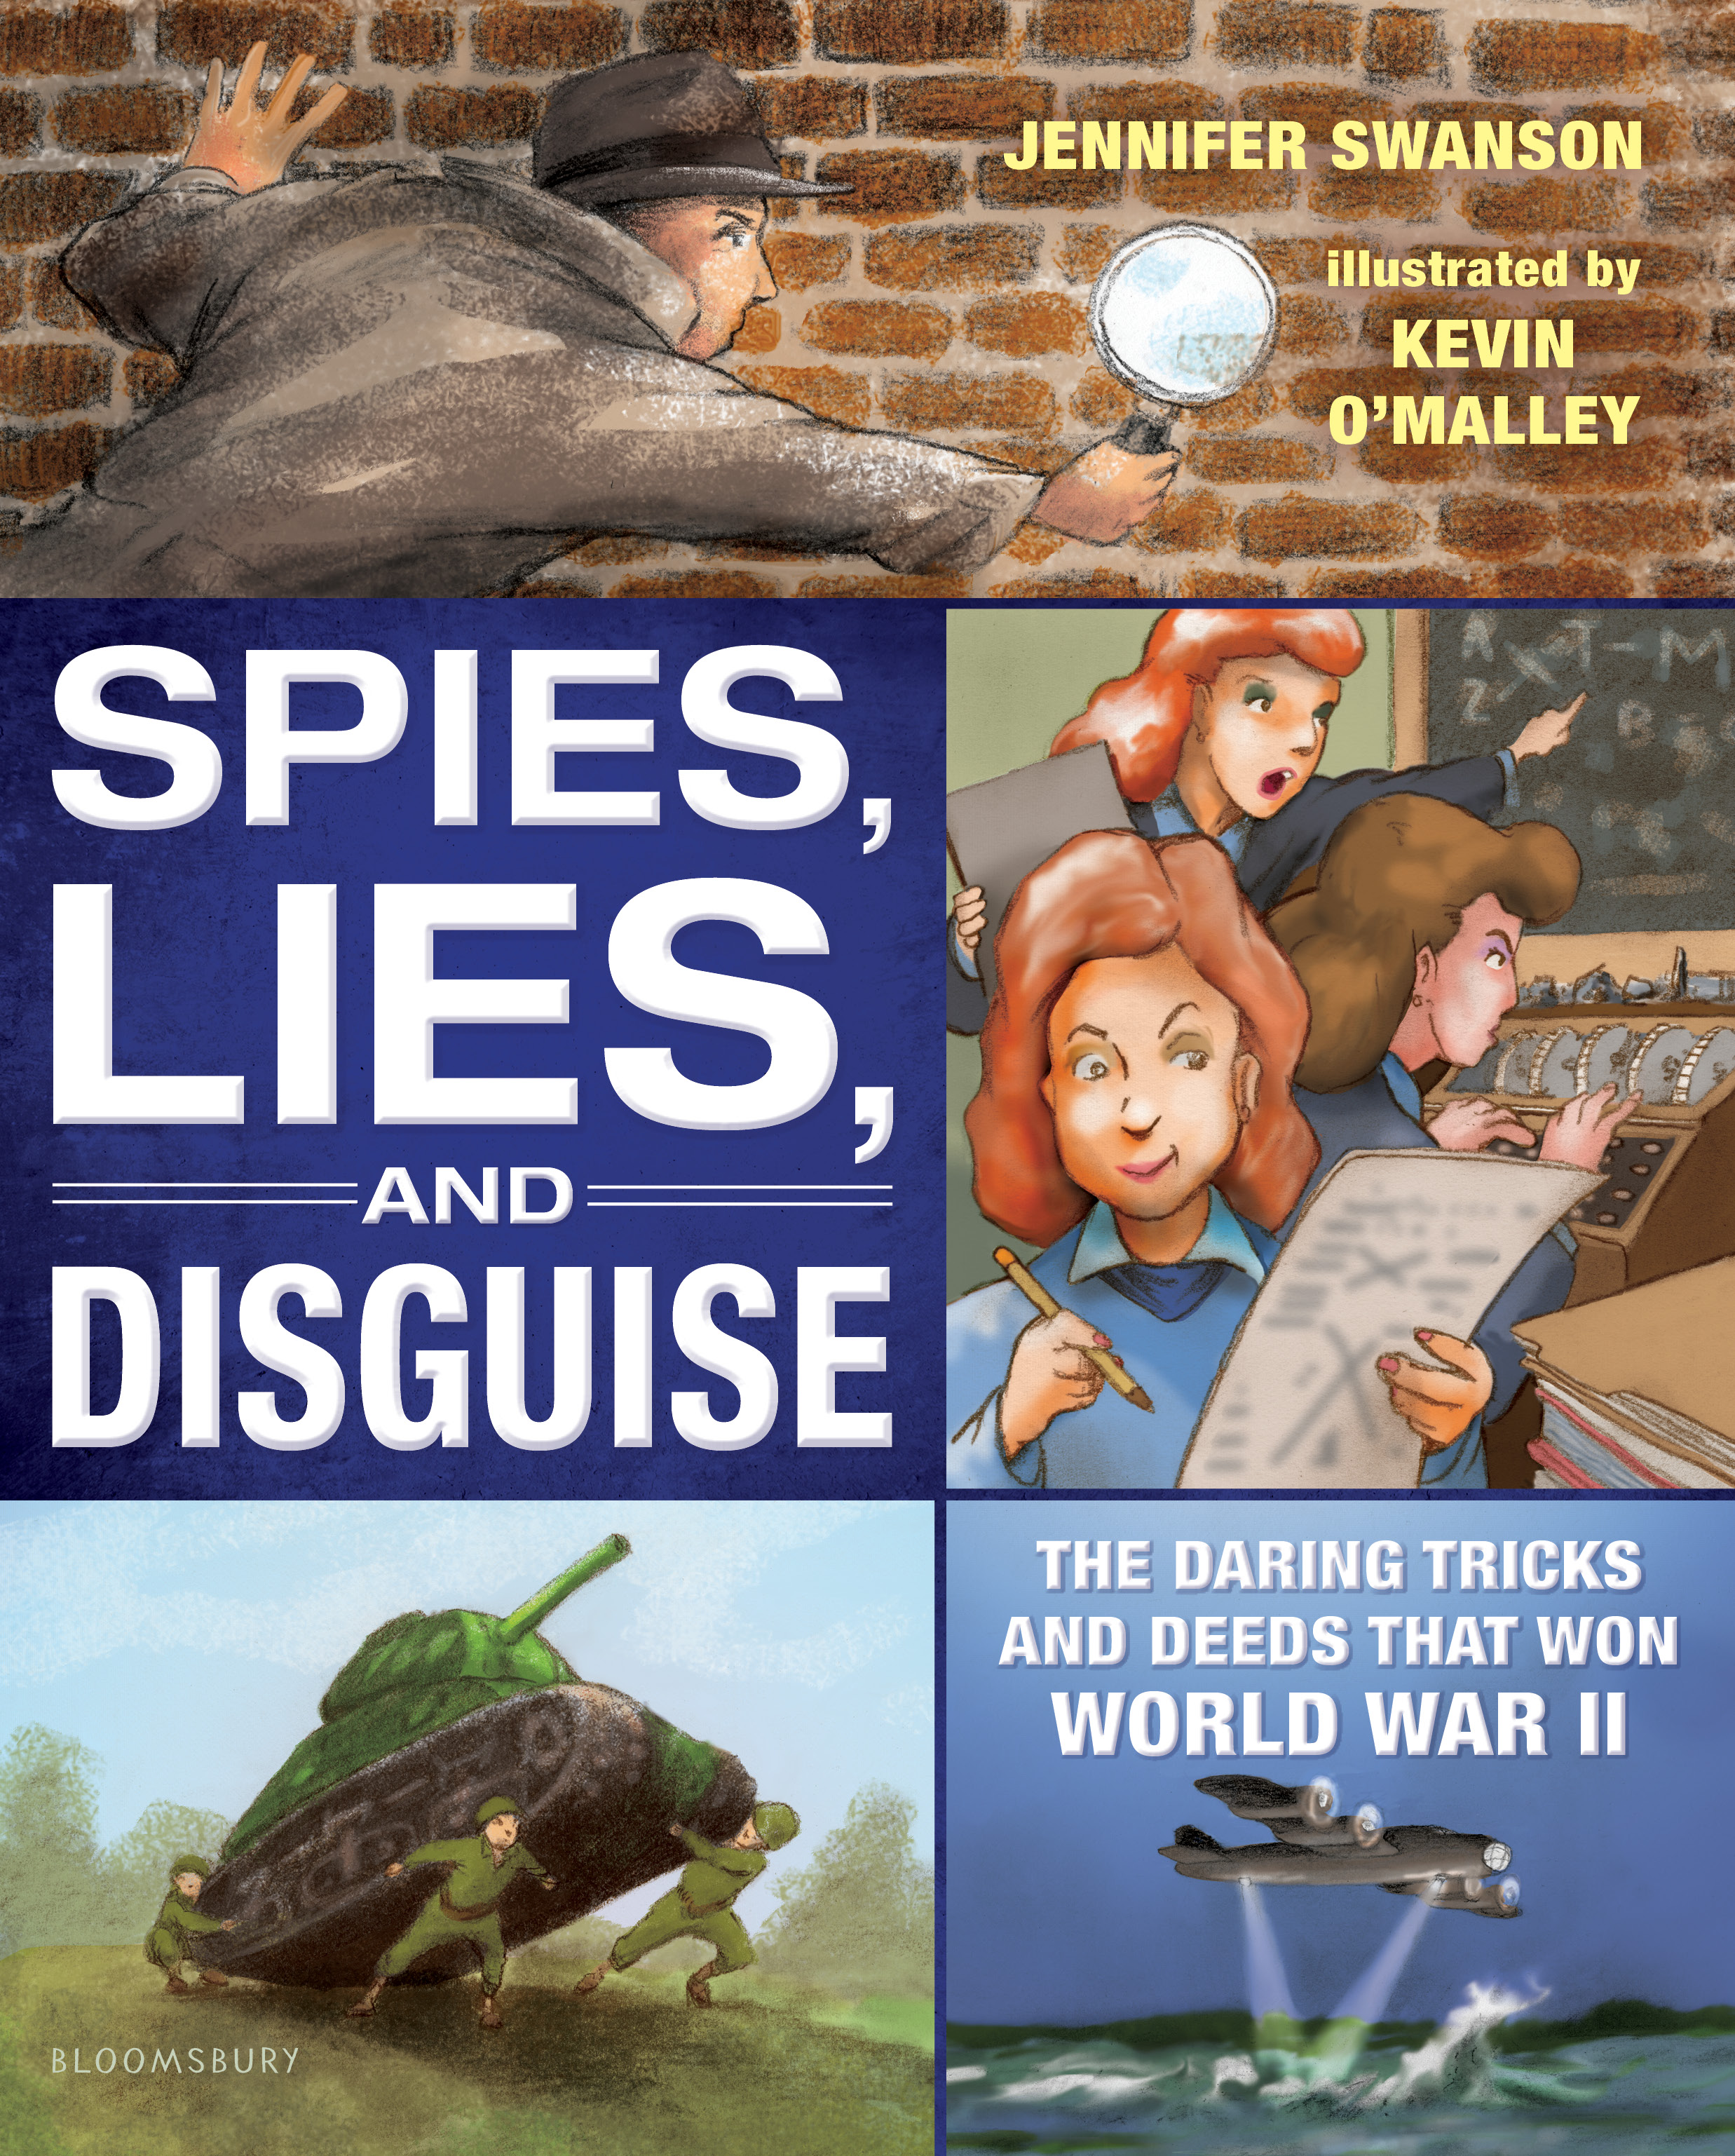 Cover Reveal for Jennifer Swanson's, Spies, Lies, and Disguise: The Daring Tricks and Deeds That Won World War II